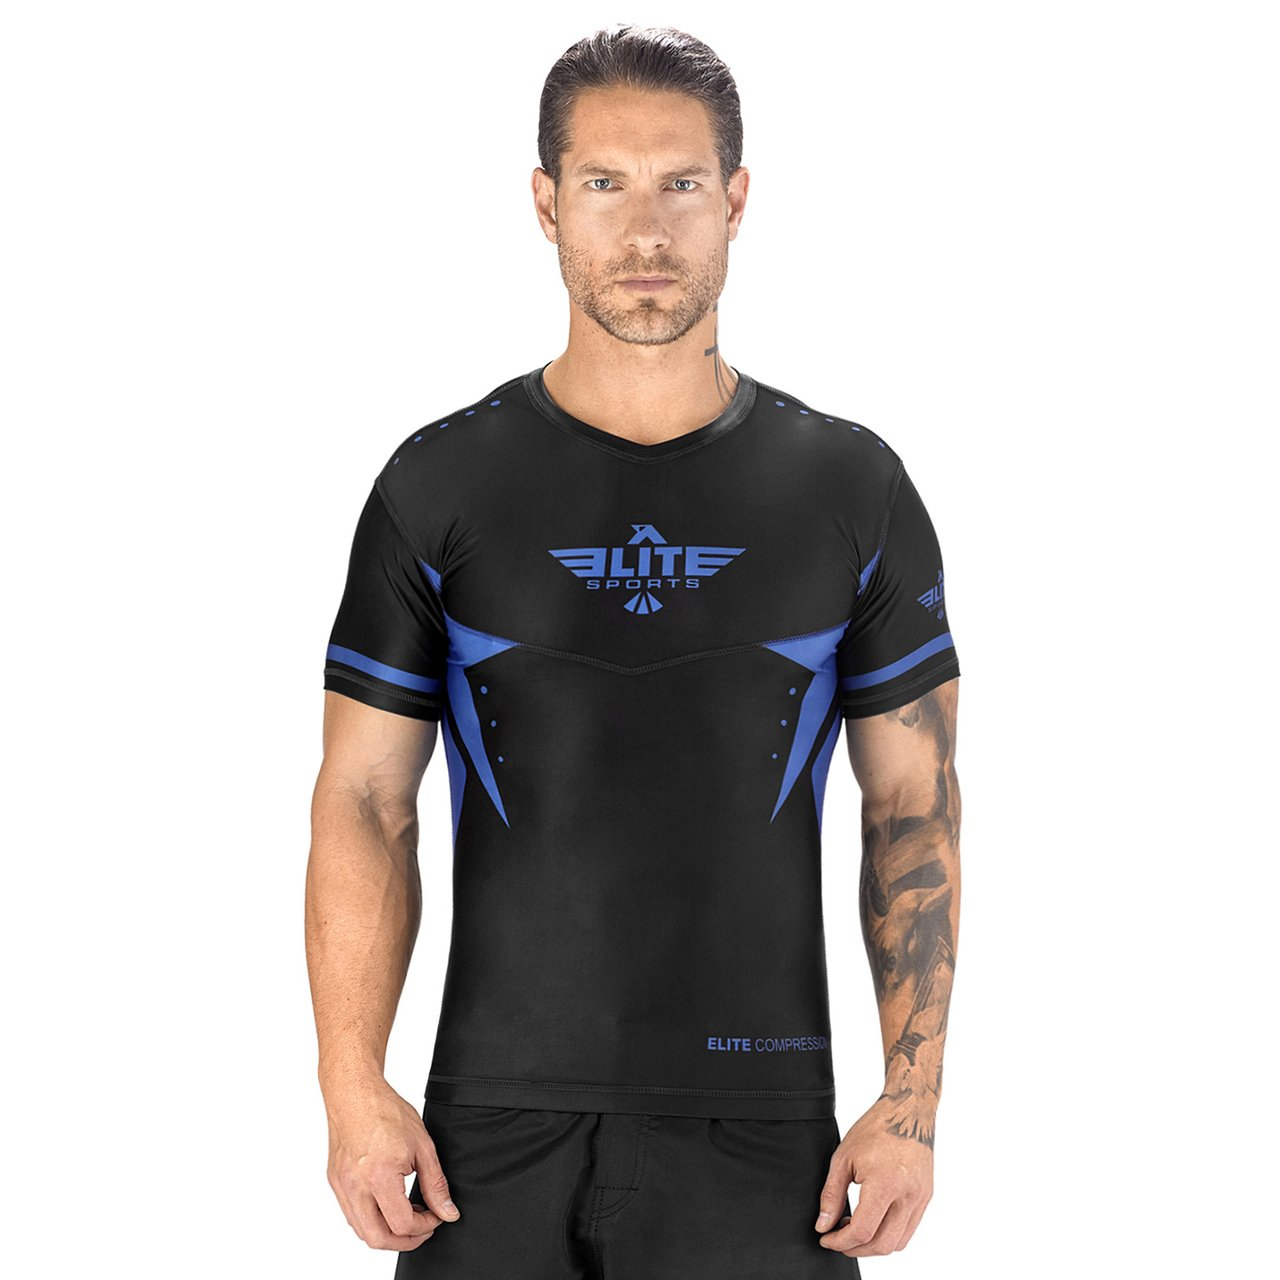 Elite Sports Star Series Sublimation Black/Blue Short Sleeve Judo Rash Guard